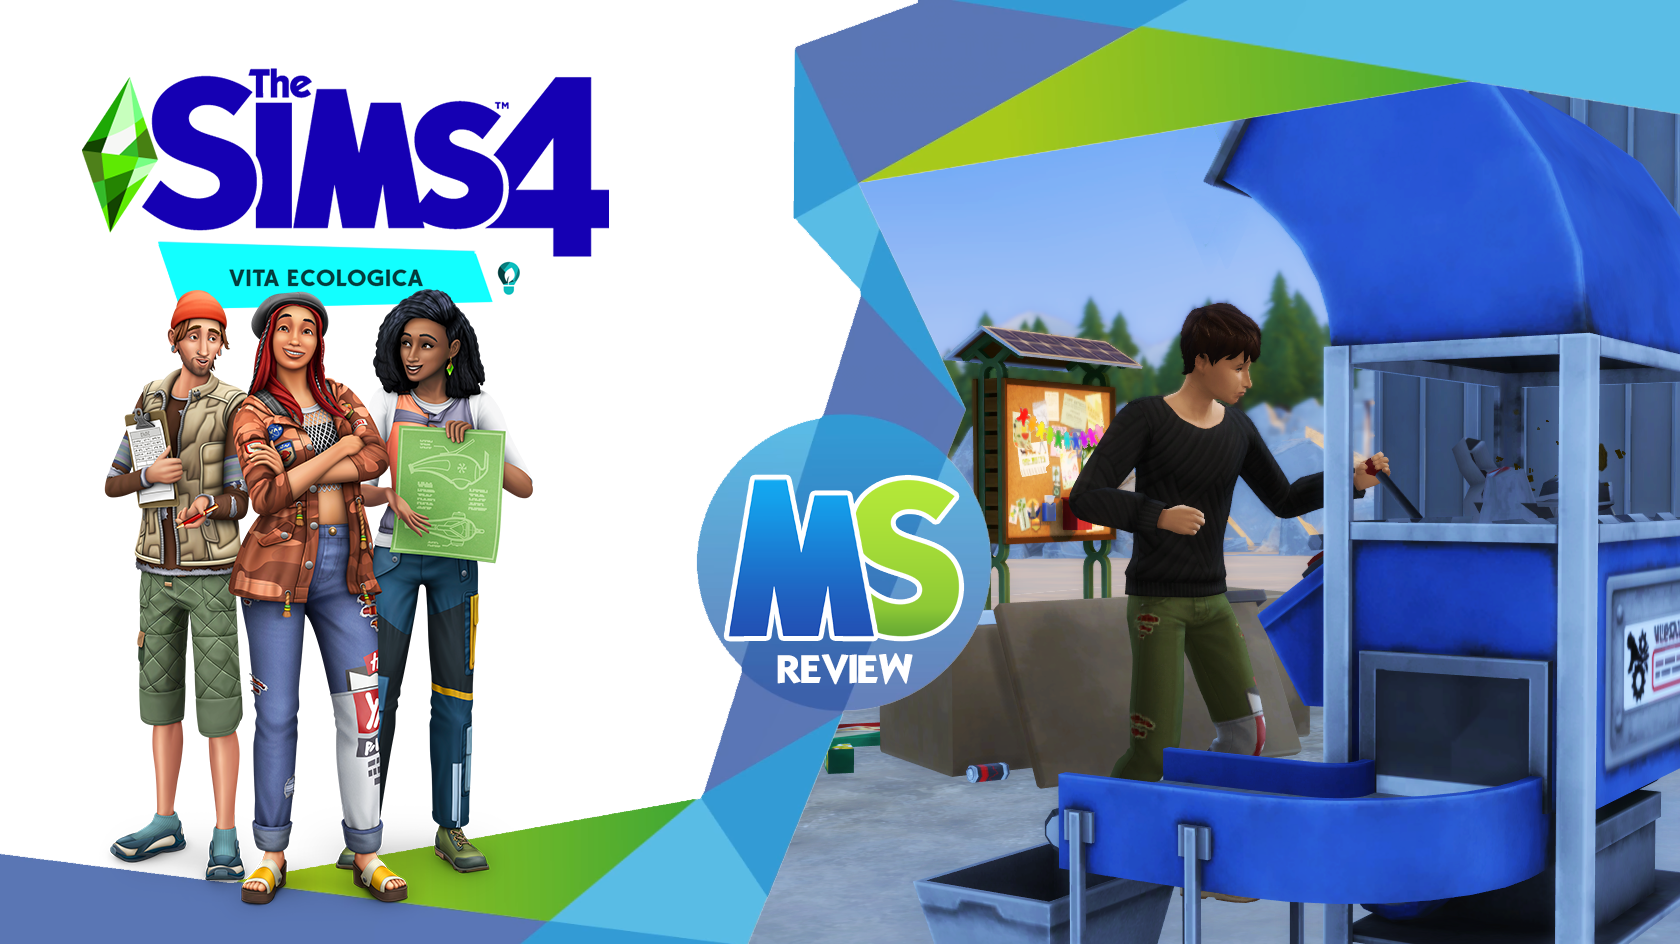 the sims 4 Vita Ecologica Review